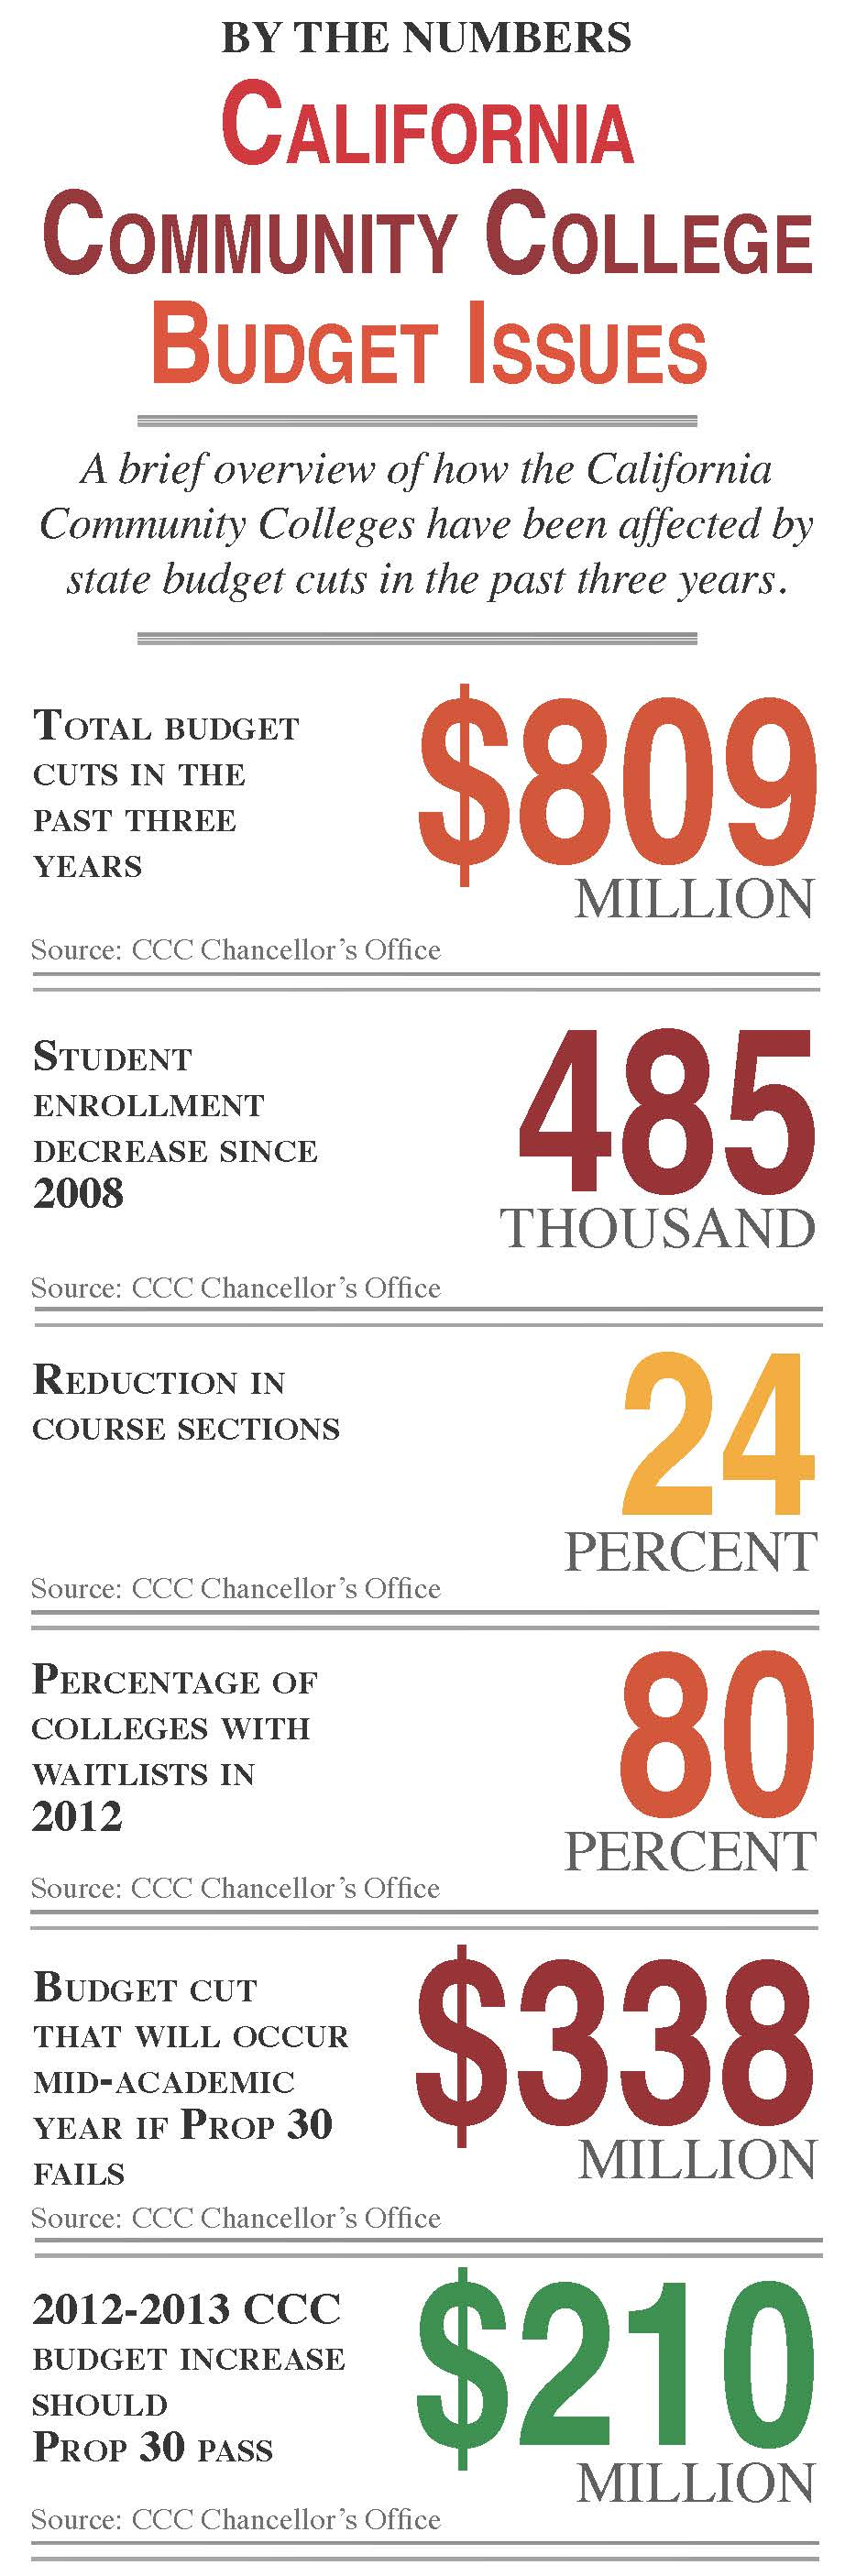 Info. graphic created by Lauren J. Mapp, Editor-in-Chief